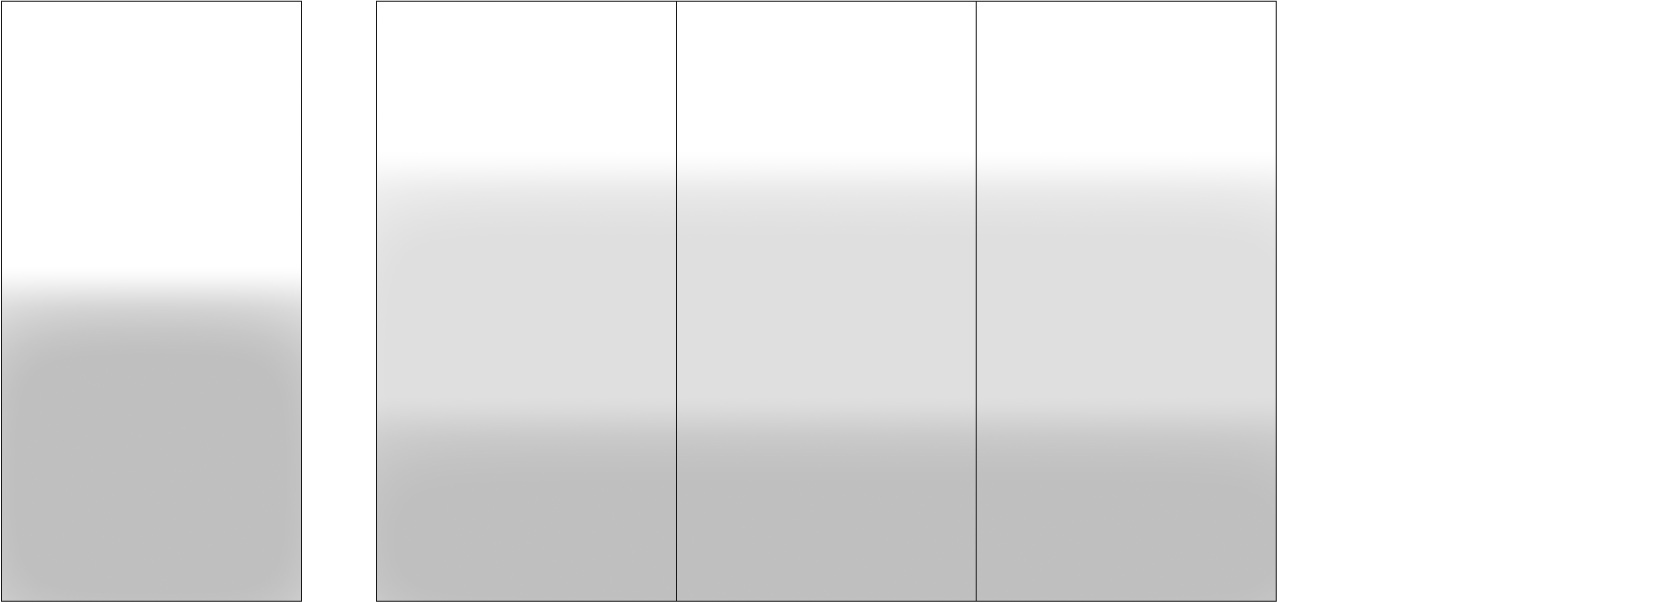 """Standard Layout (108"""" height by full width) and Multi-Panel Variation"""